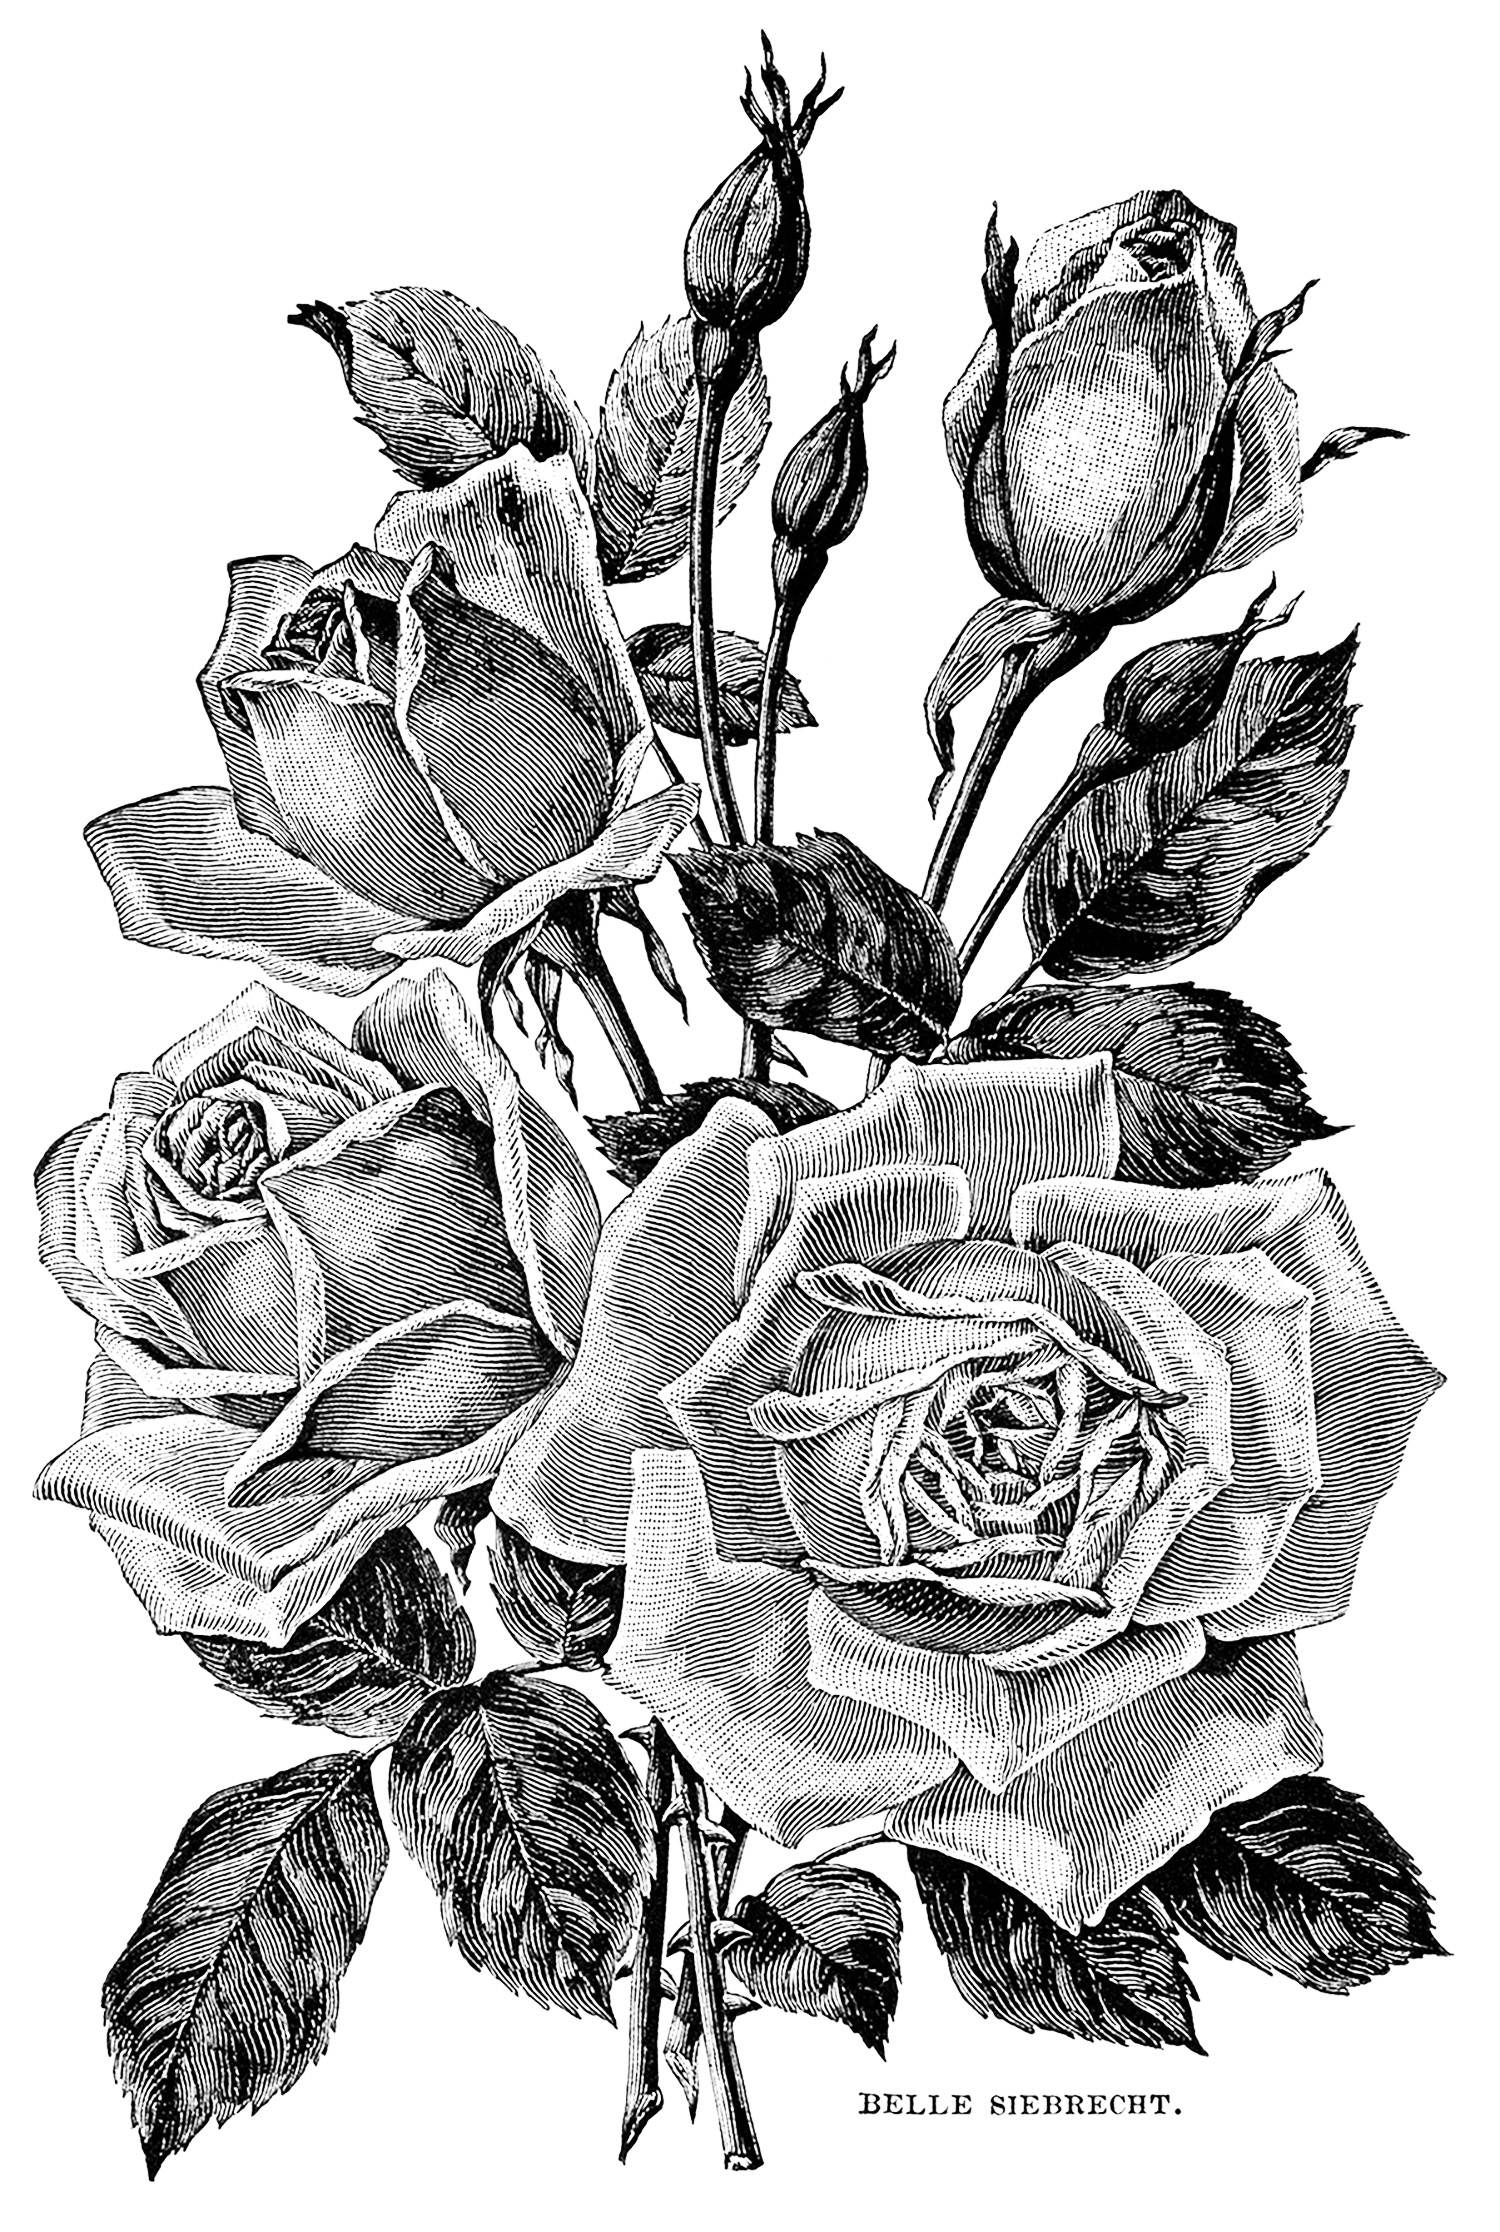 rose garden coloring page flowers and vegetation coloring pages for adults garden coloring rose page